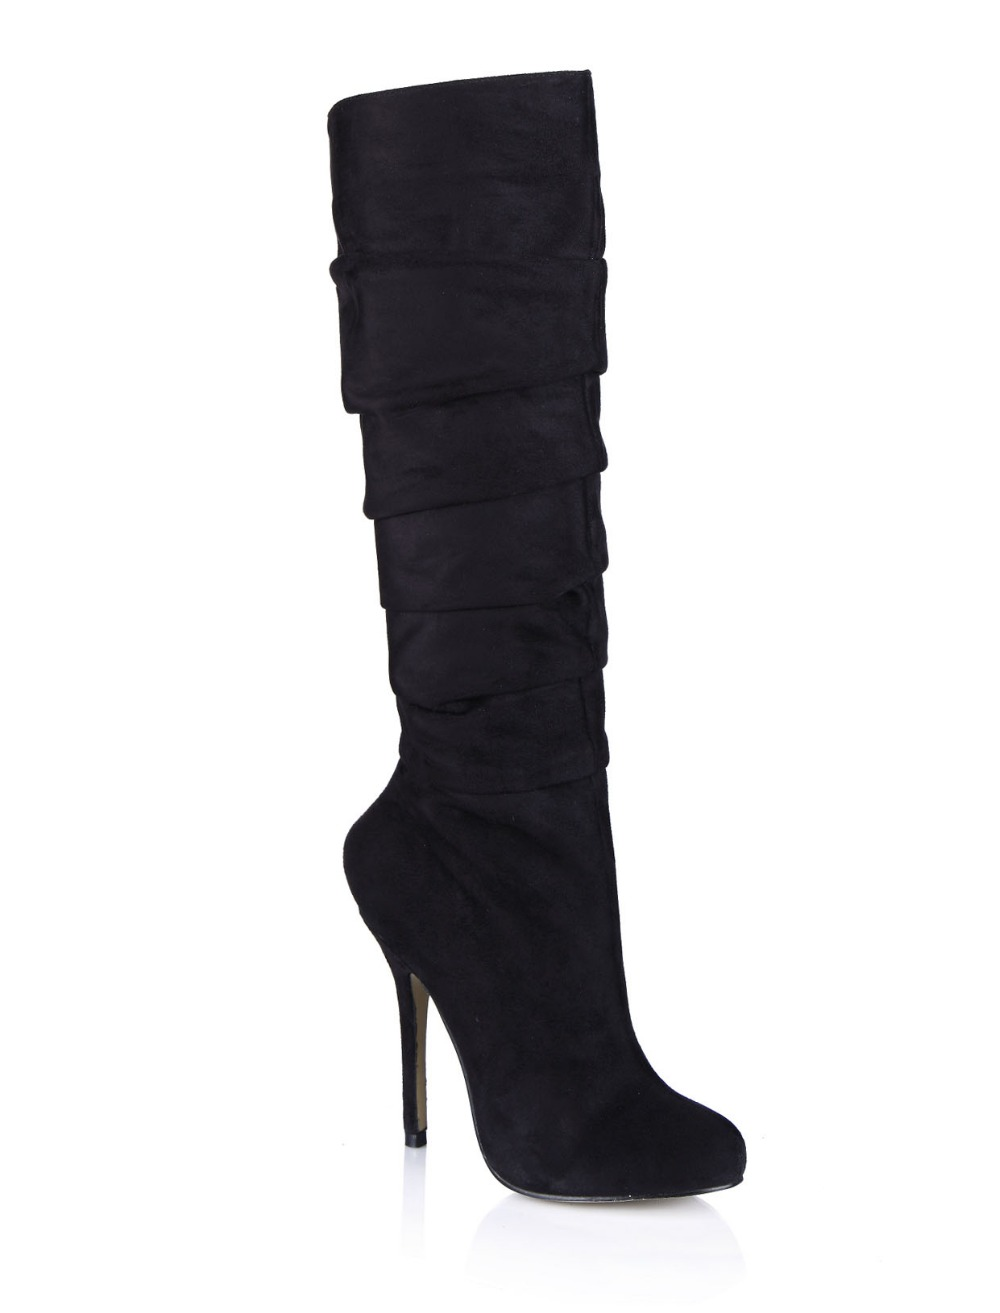 hot sexy stiletto high heeled boots fashion pu suede zipper pleated knee high boots round toe female long boots high heels shoes 20cm pole dancing sexy ultra high knee high boots with pure color sexy dancer high heeled lap dancing shoes